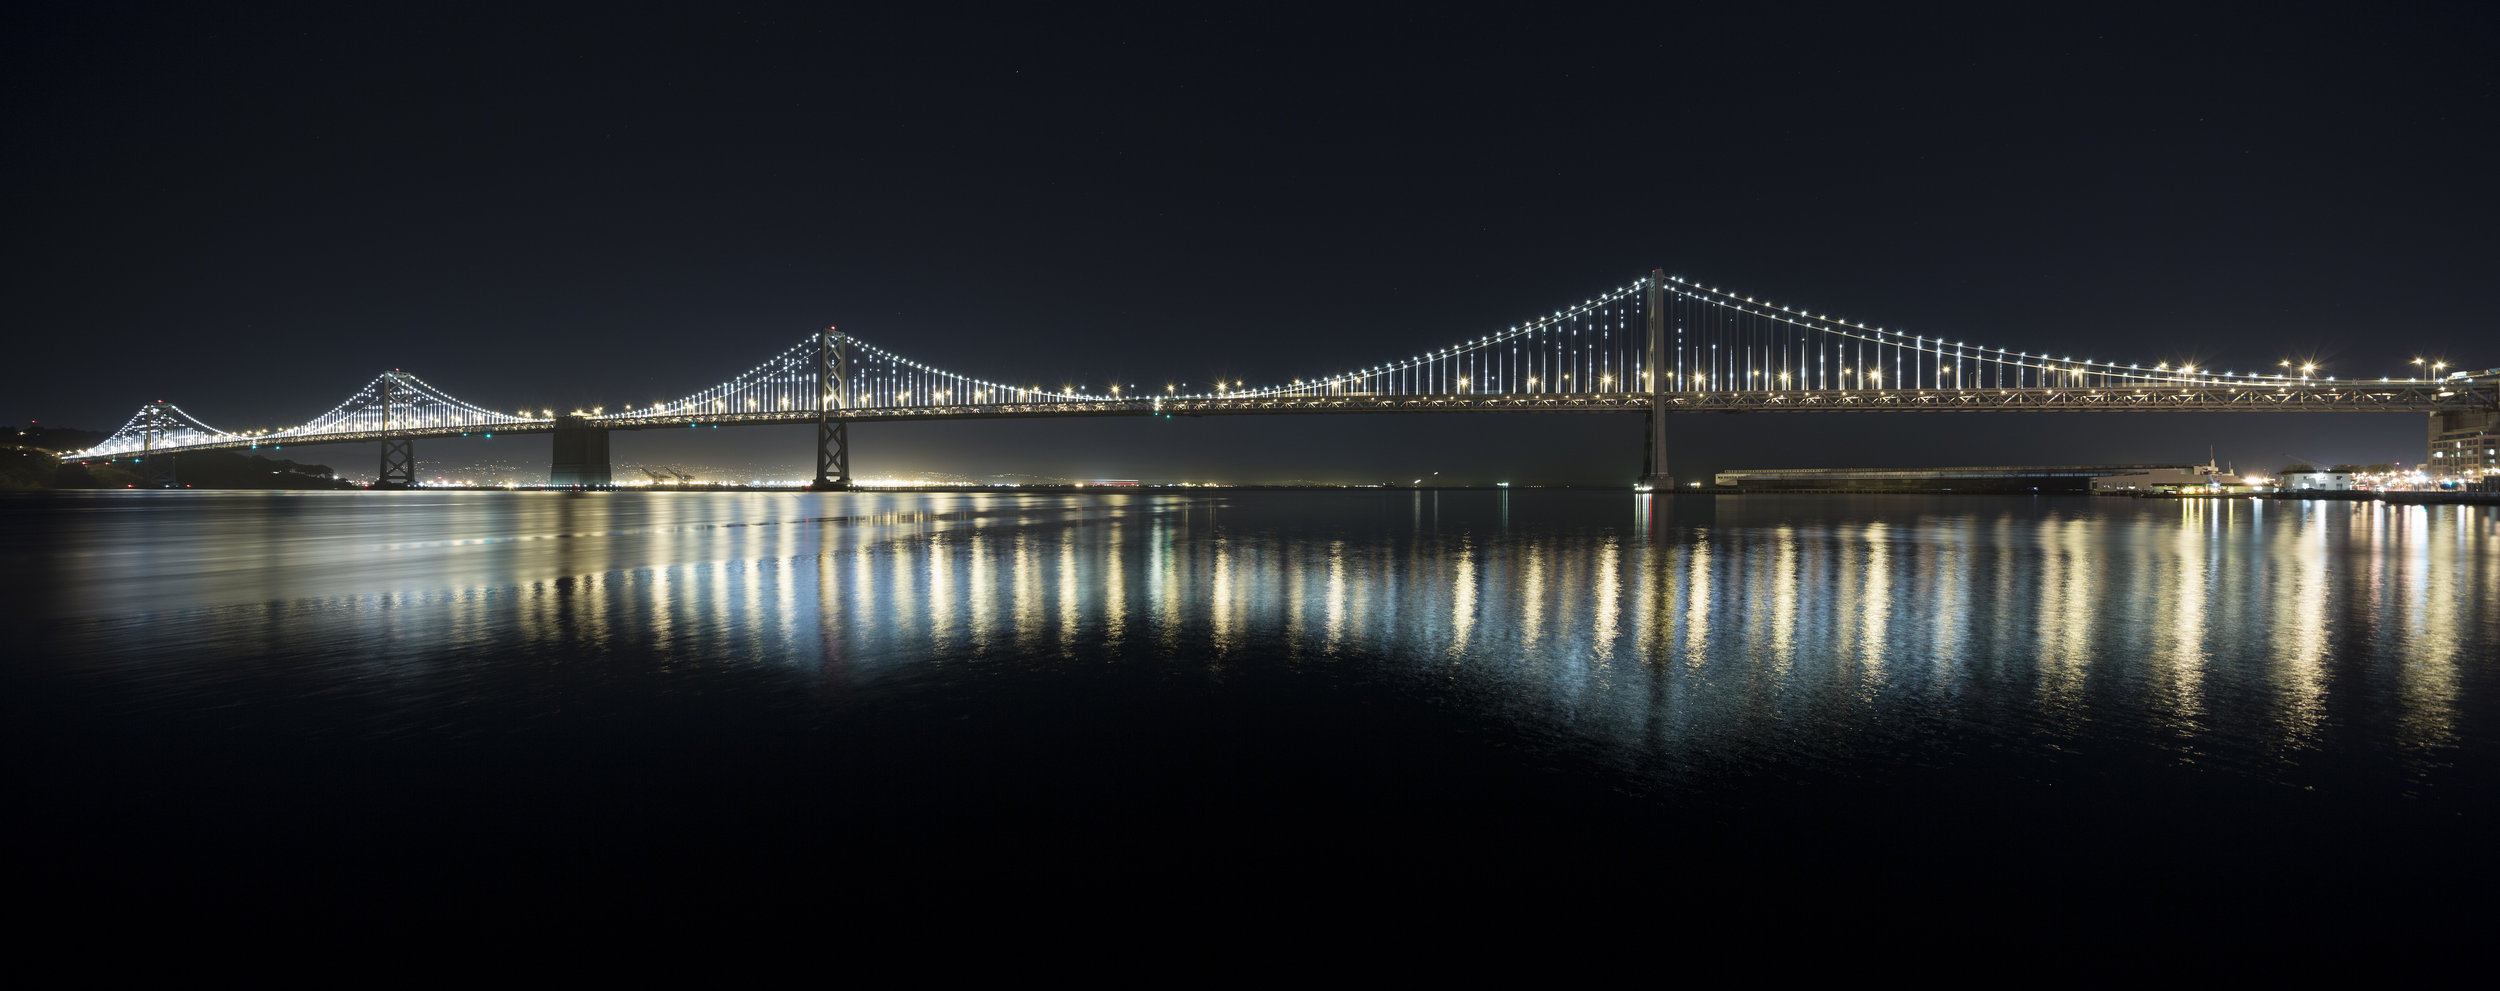 LV_The Bay Lights_2013_James_Ewing_2.JPG